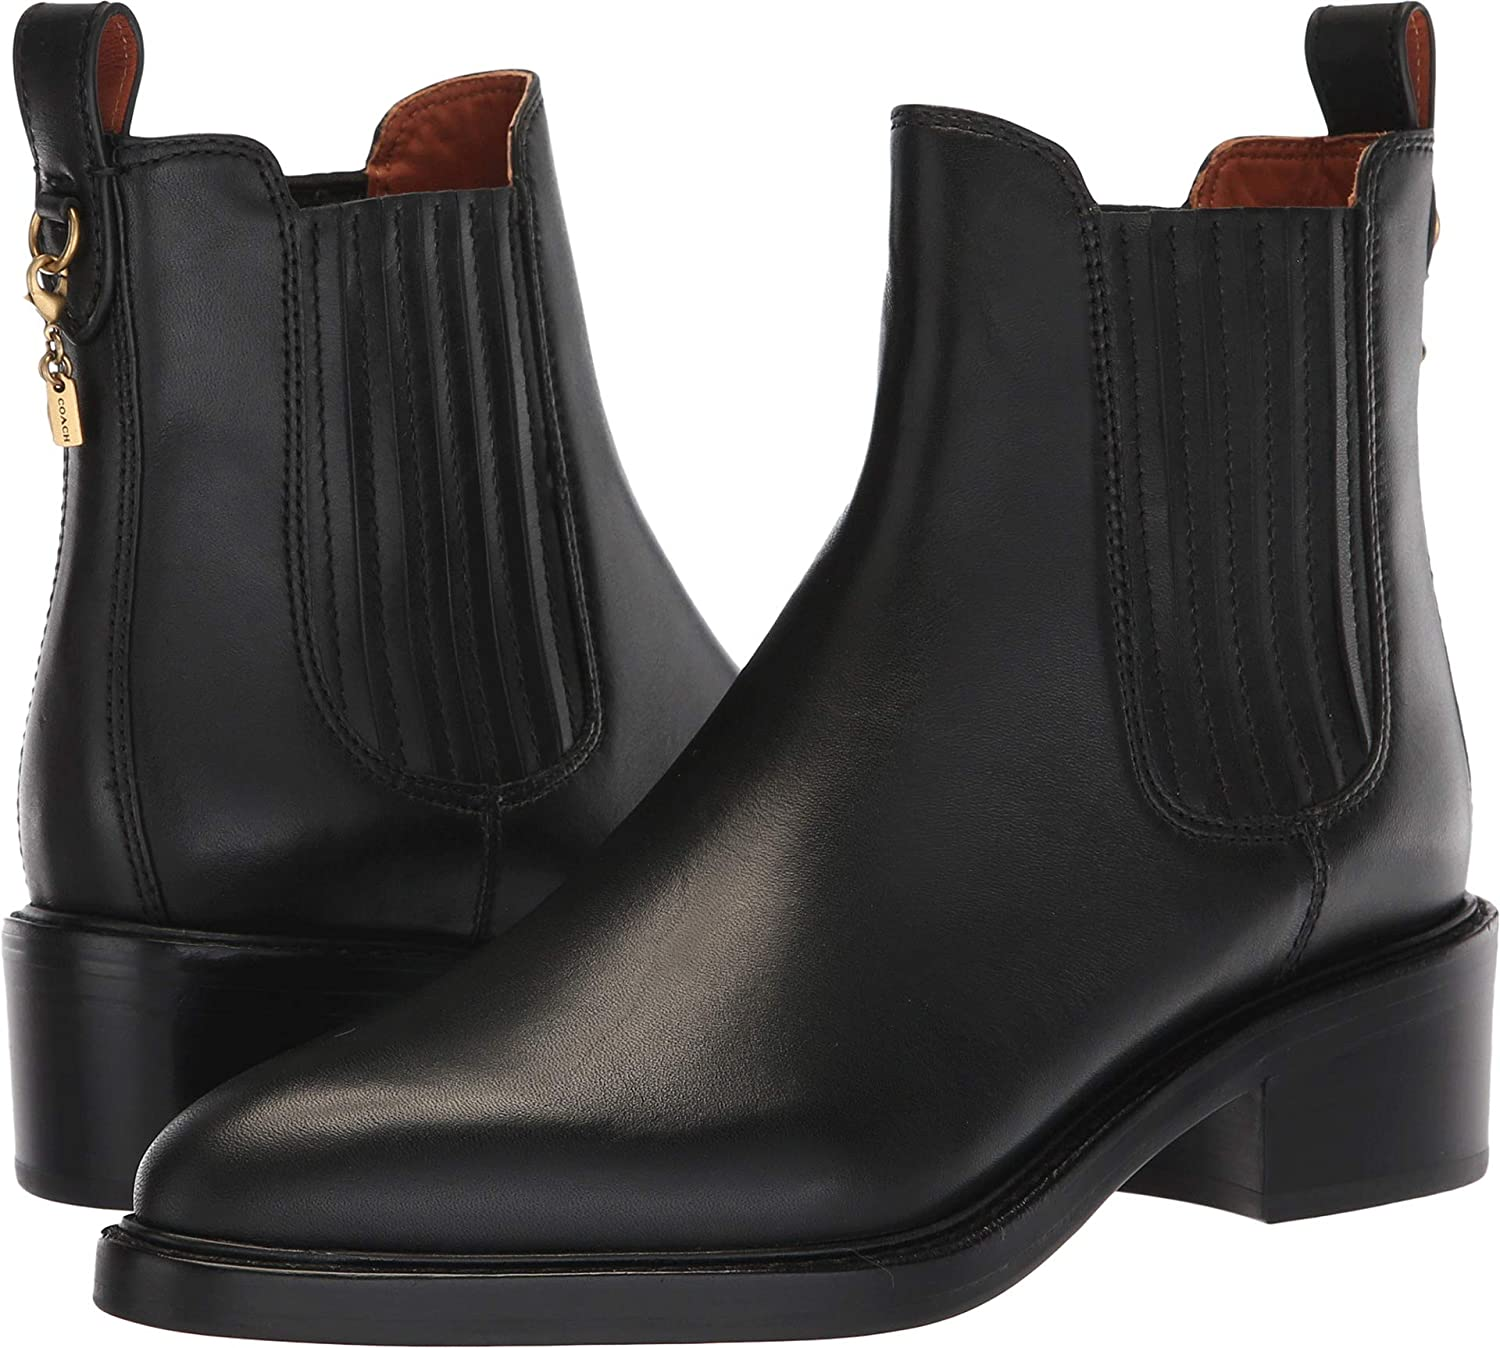 COACH Bowery Chelsea Bootie Black